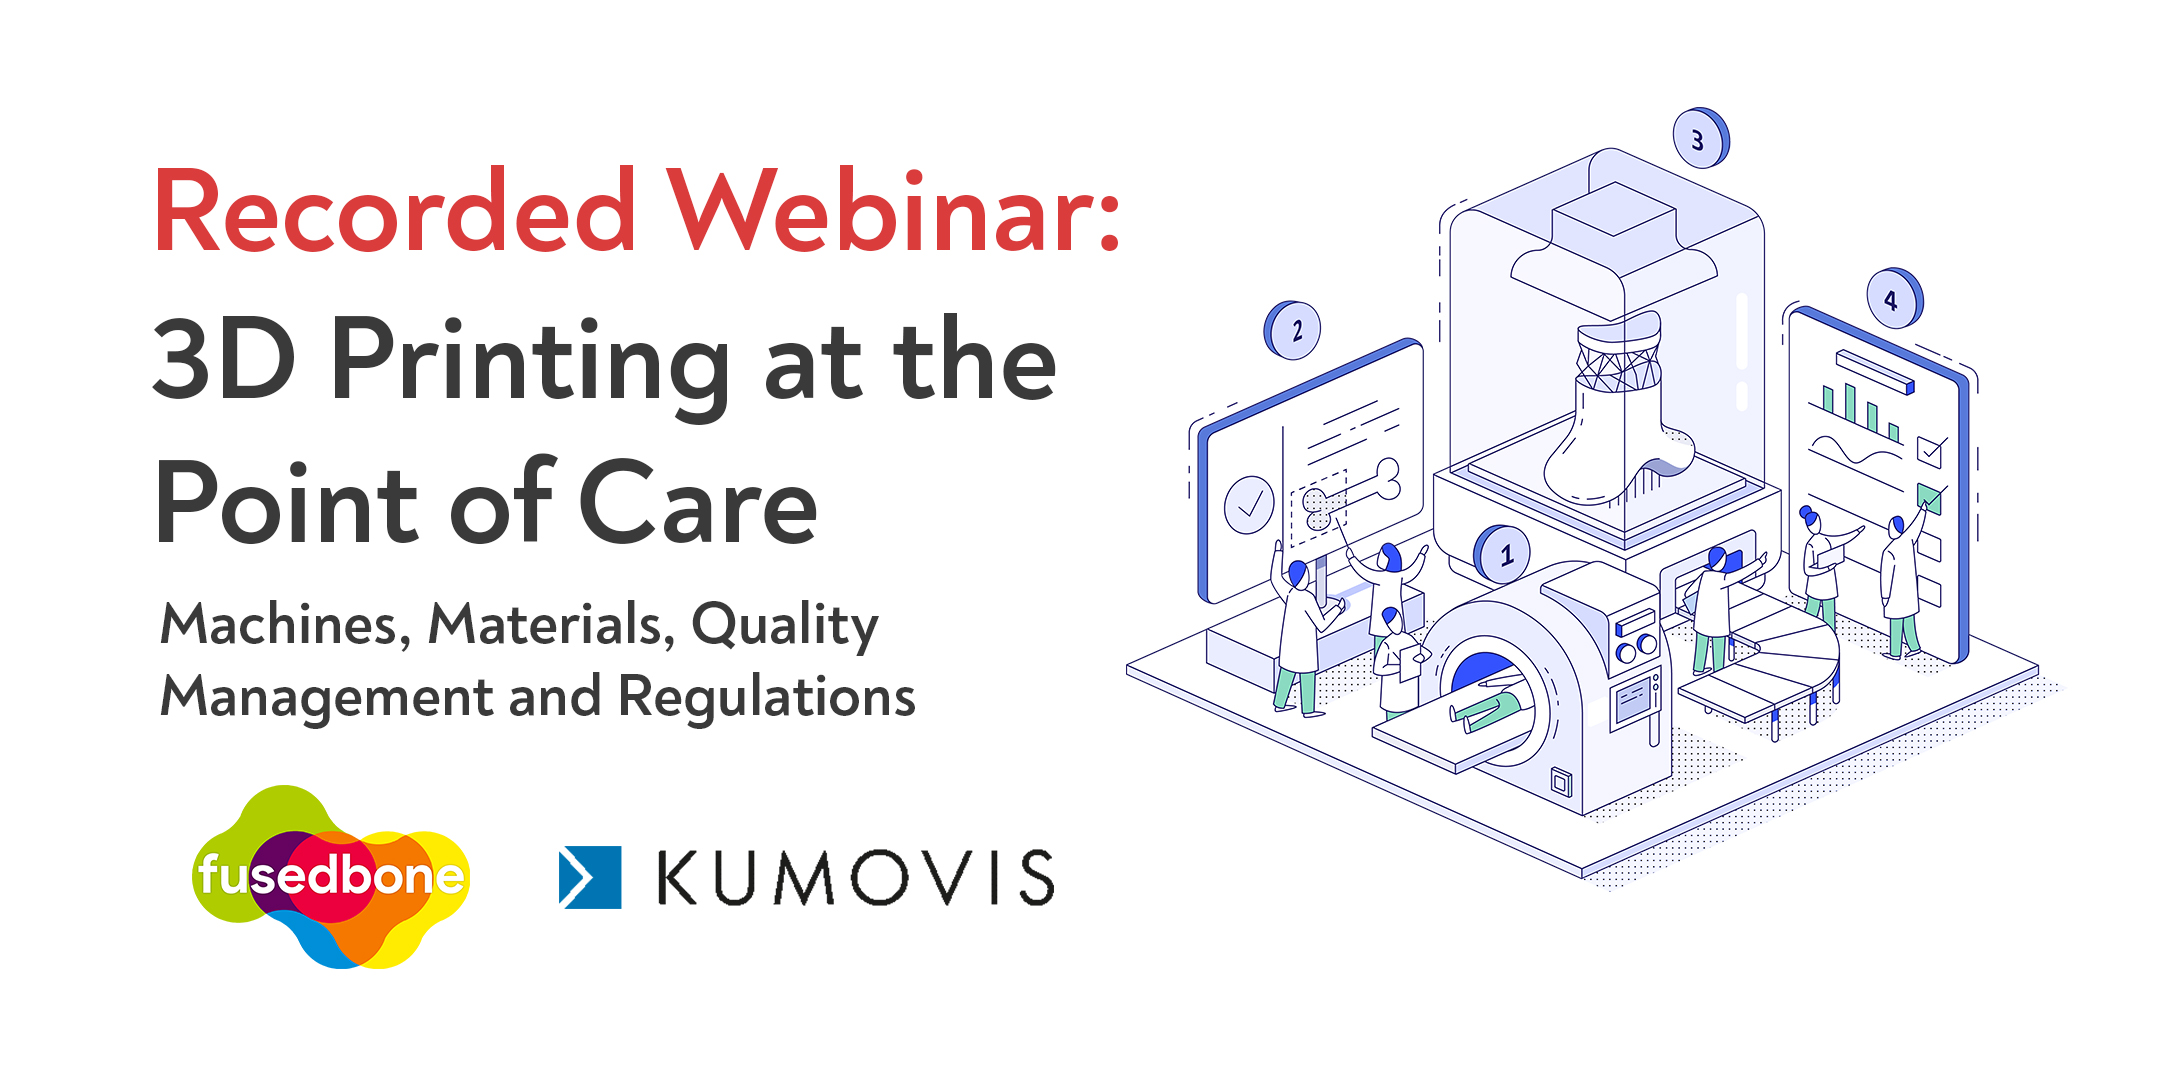 Recorded Webinar: 3D Printing at the Point of Care